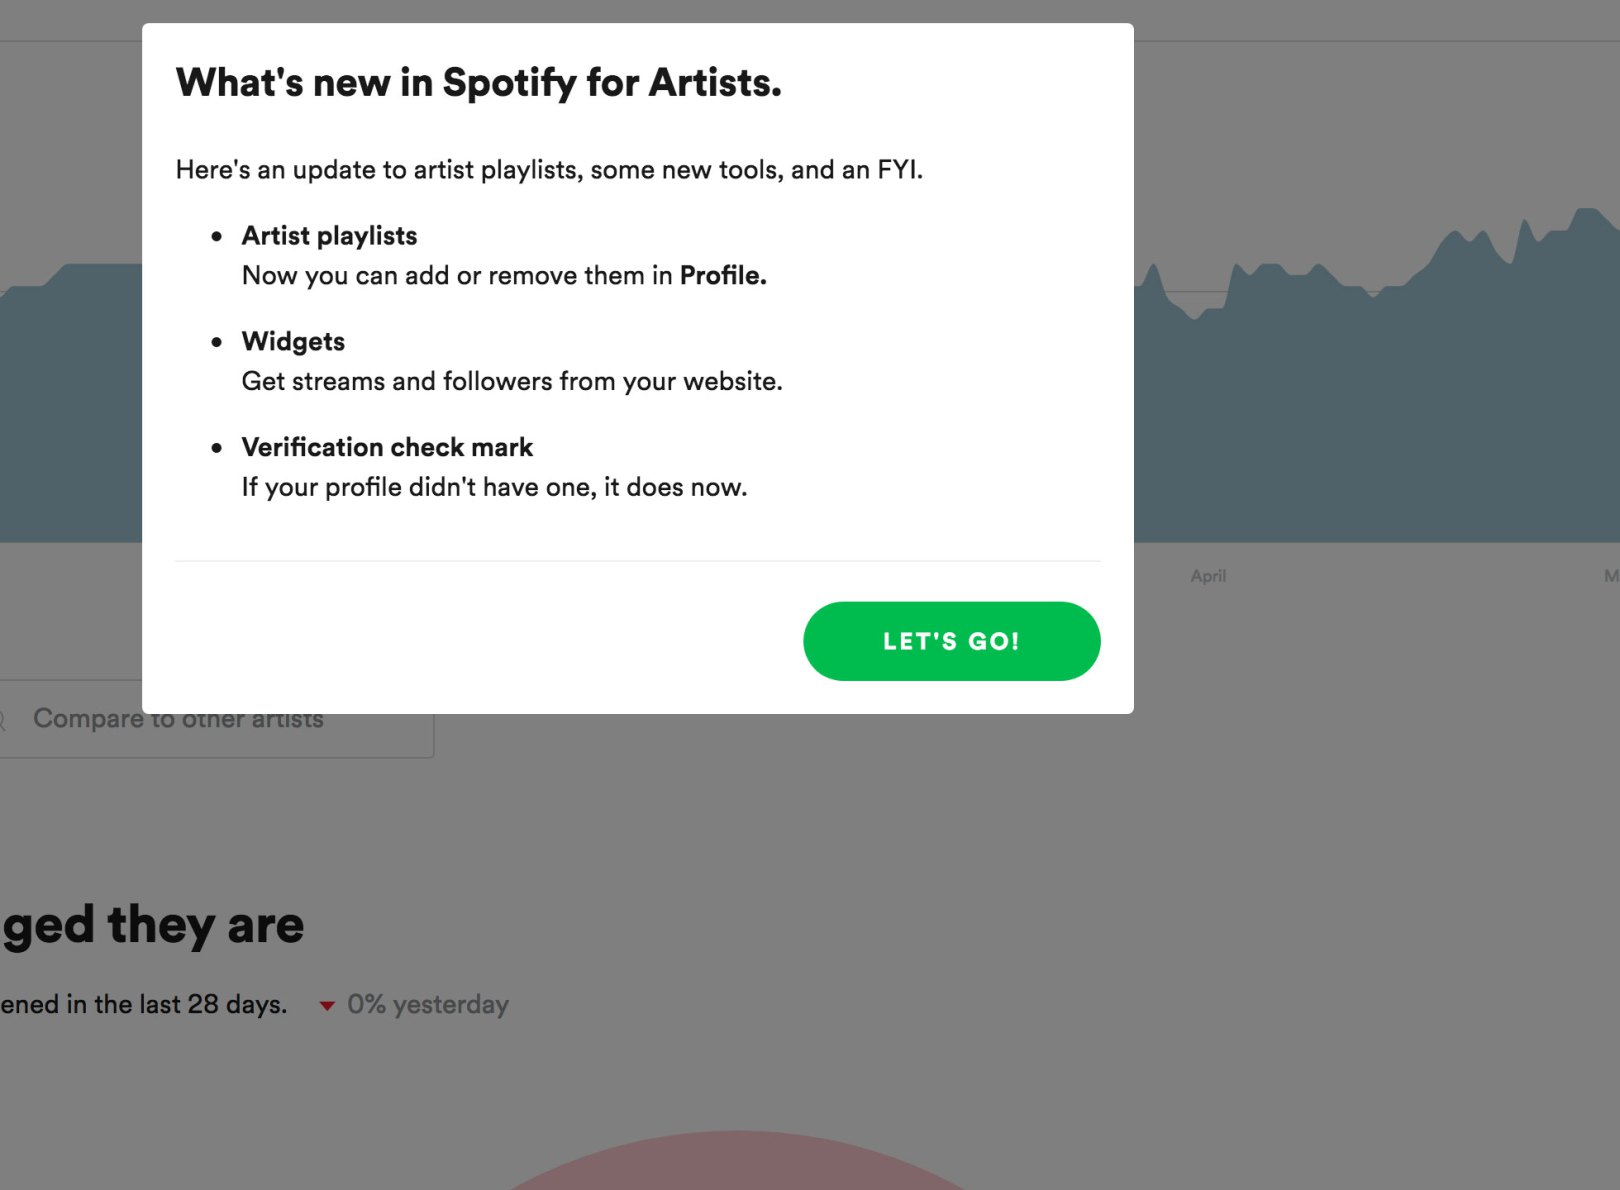 Verified artist on spotify